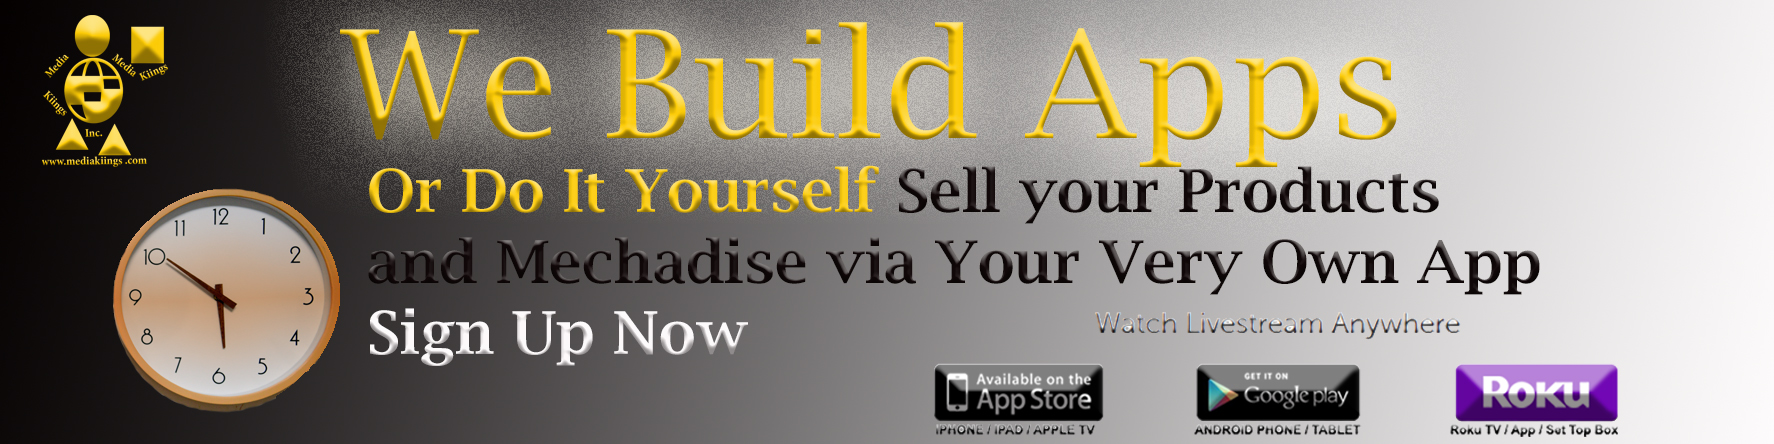 Get Your Own App Today